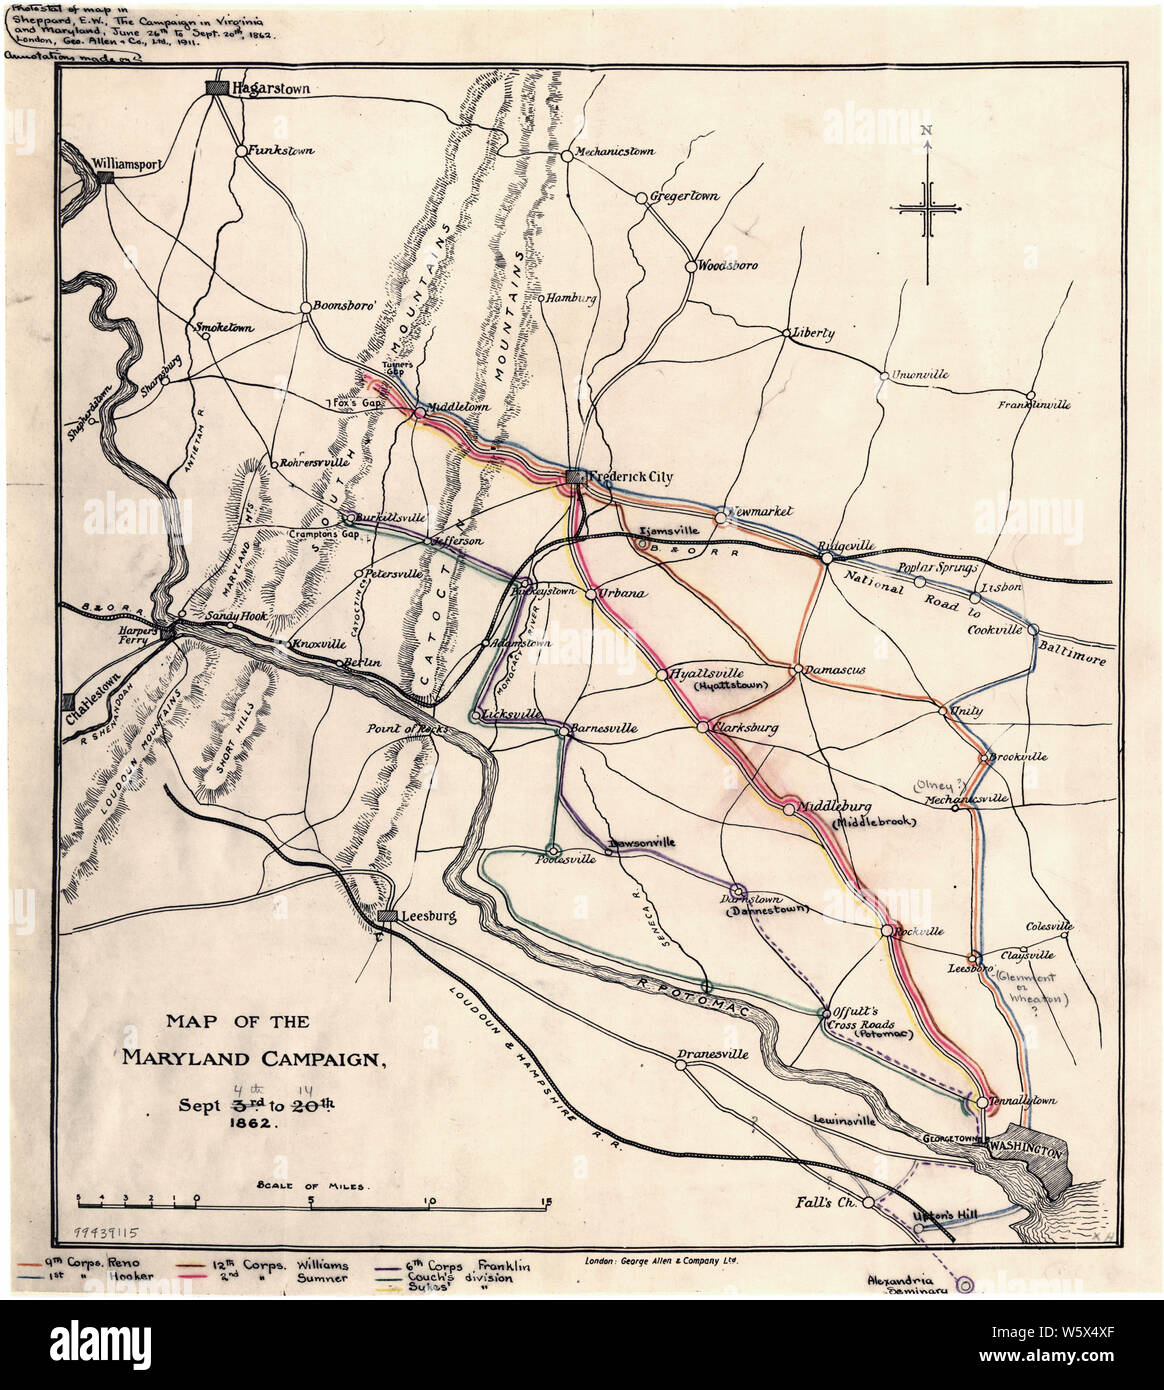 Civil War Maps 0920 Map of the Maryland Campaign Sept 3rd to 29th 1862 Rebuild and Repair Stock Photo